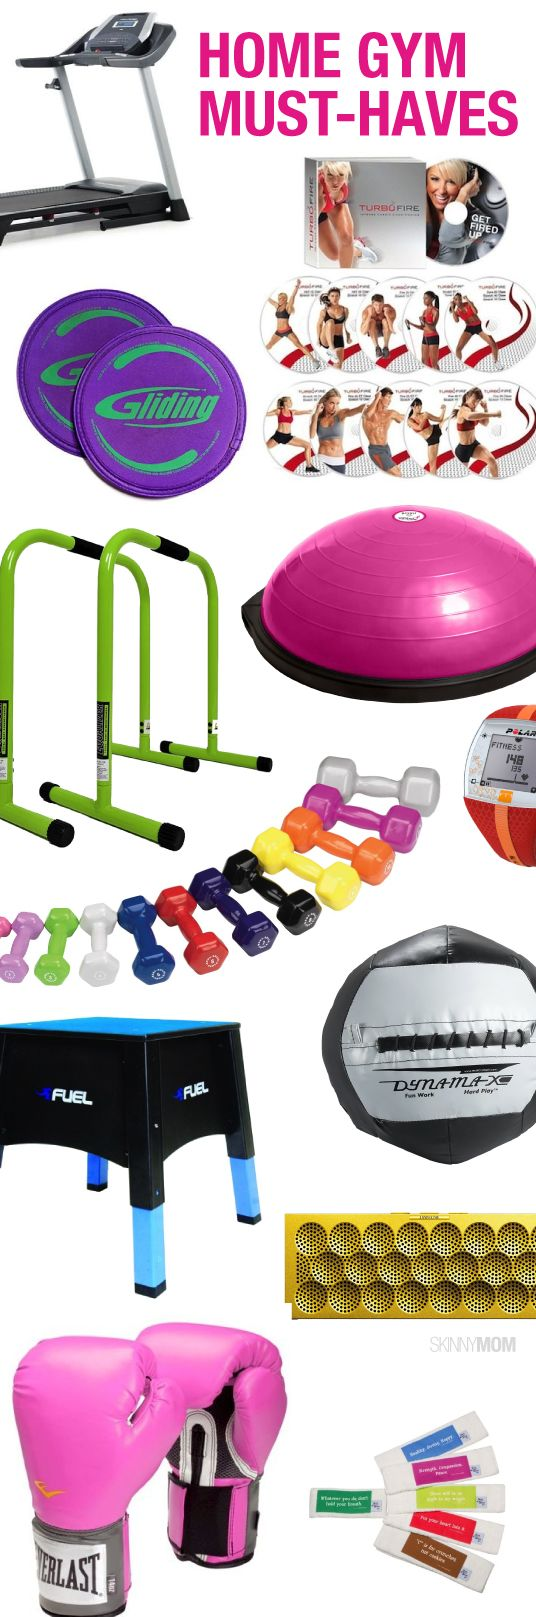 Looking to build a gym at home? Check out this must-have items!